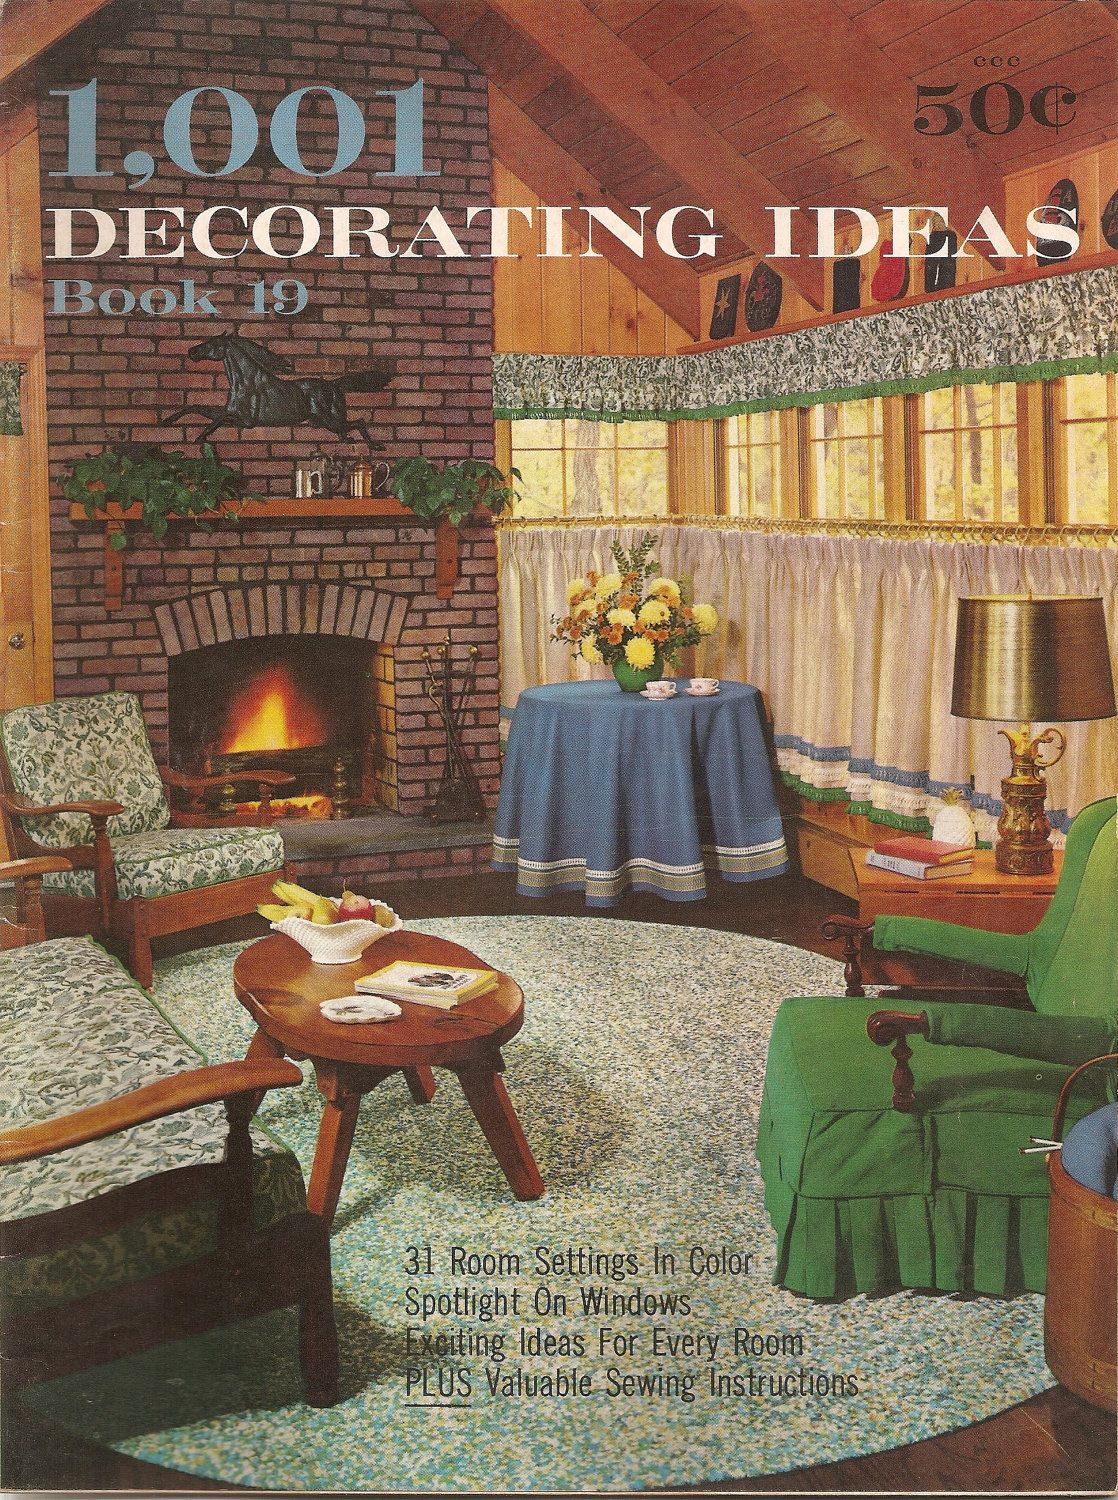 60s Home Decoration Booklet 1963 Vintage Consos 1001 Decorating Ideas Book 19 Retro Decor